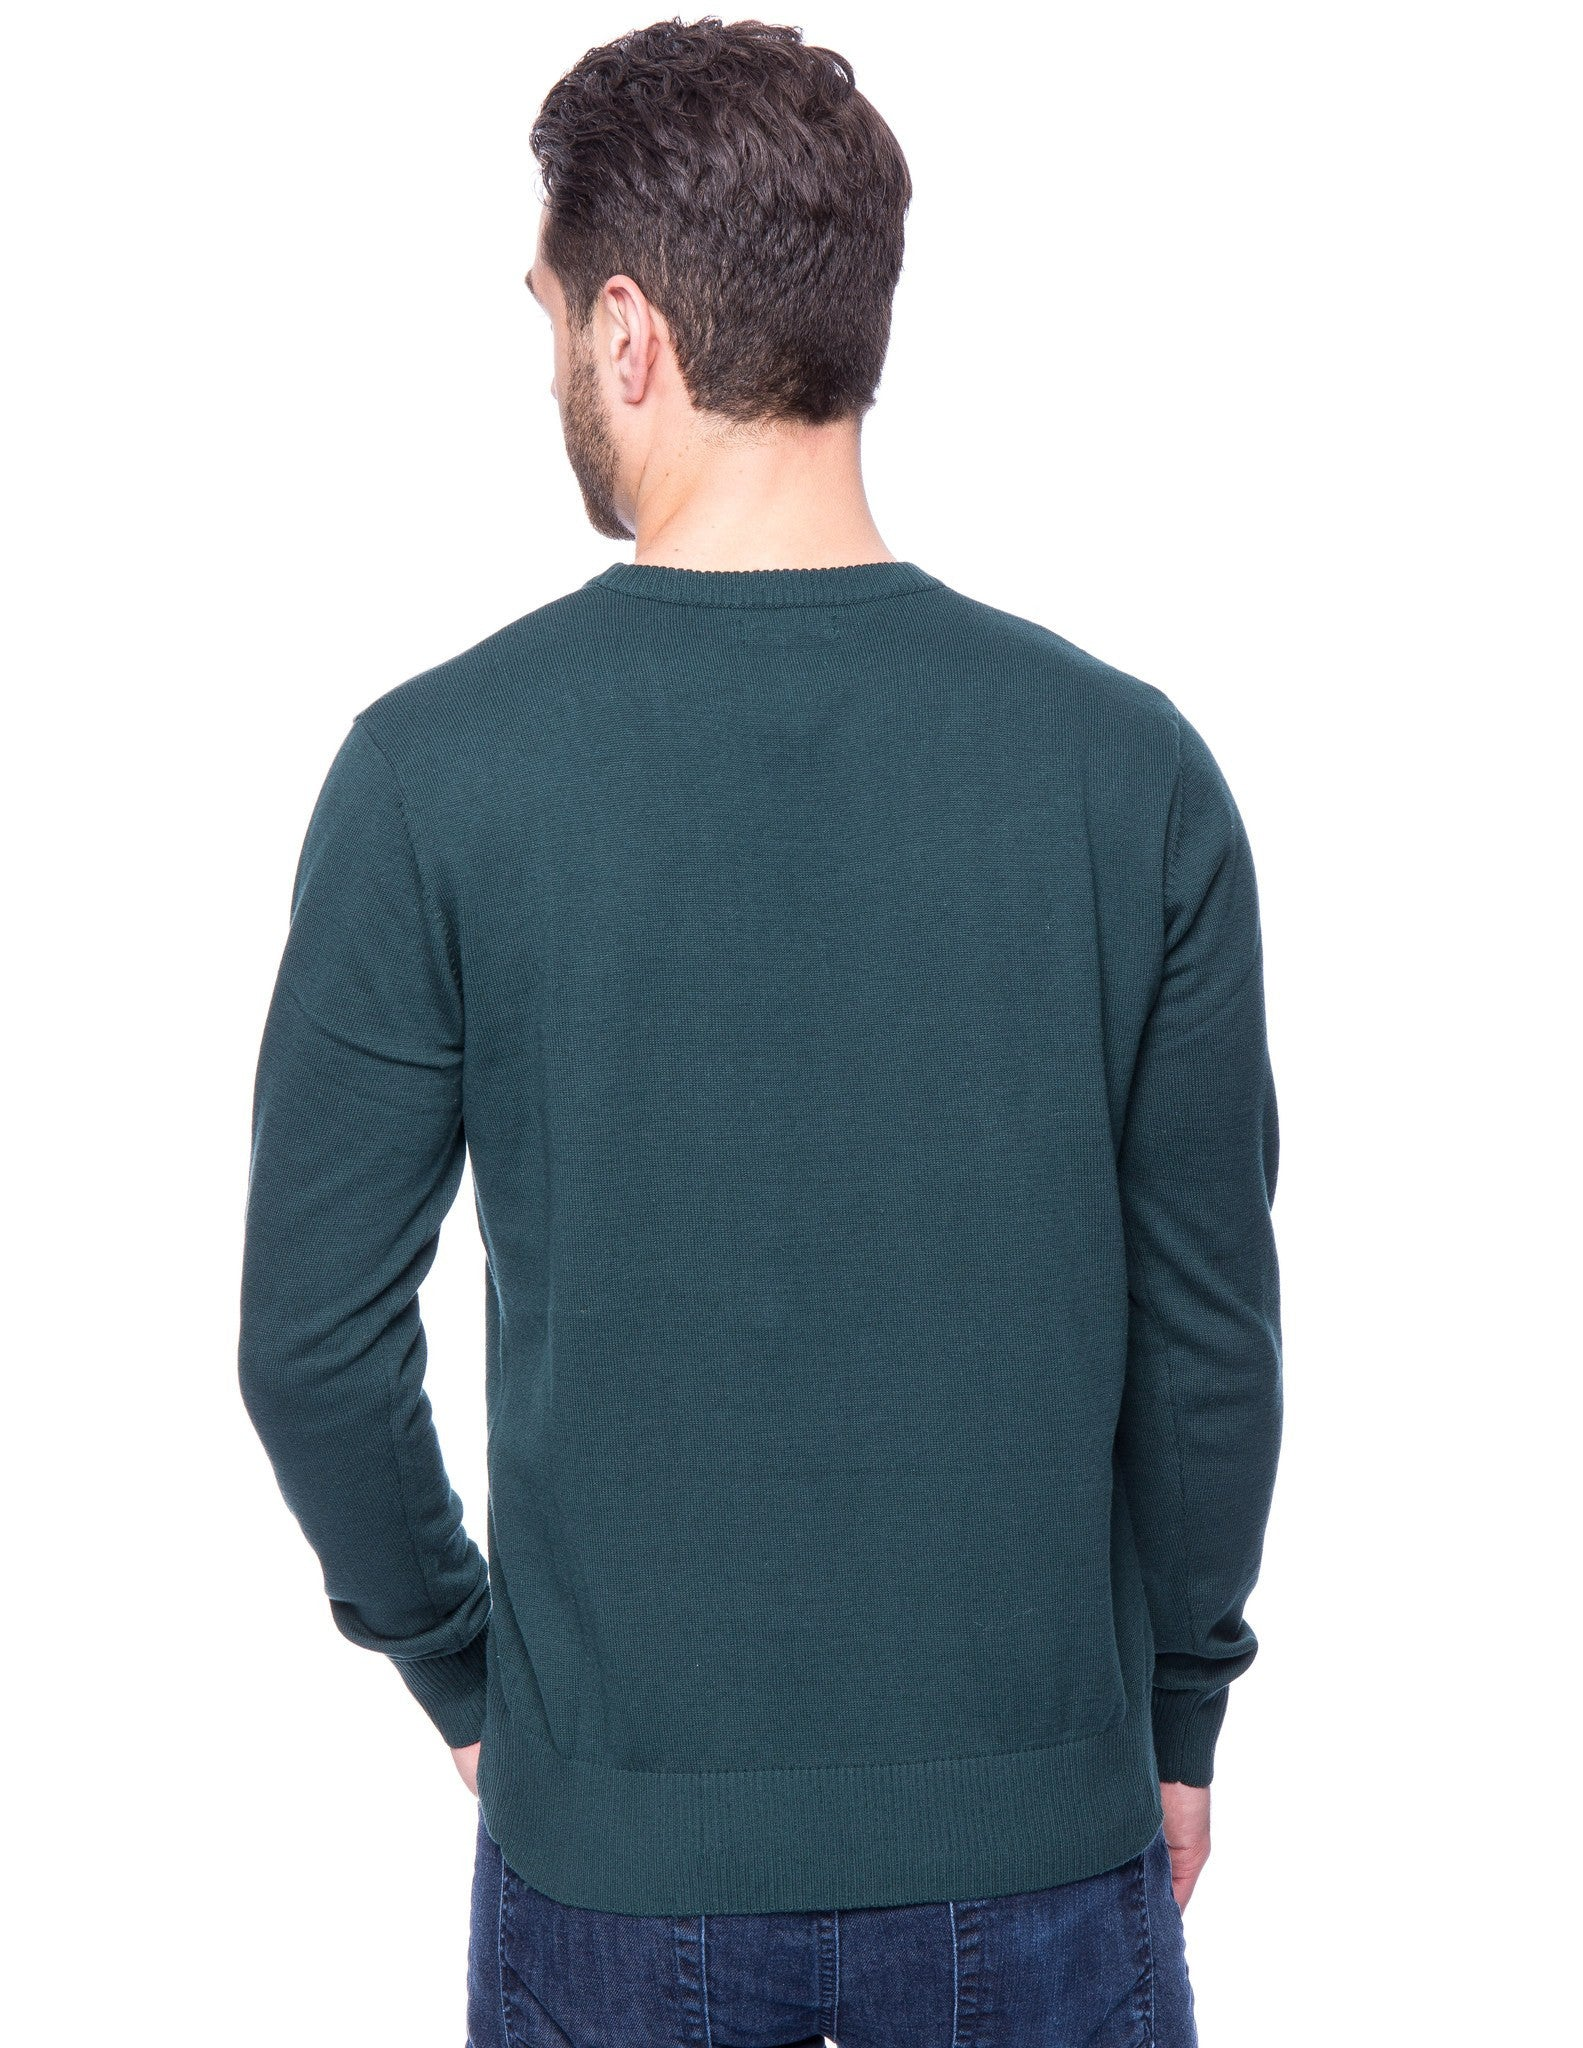 Cotton Crew Neck Sweater - Green